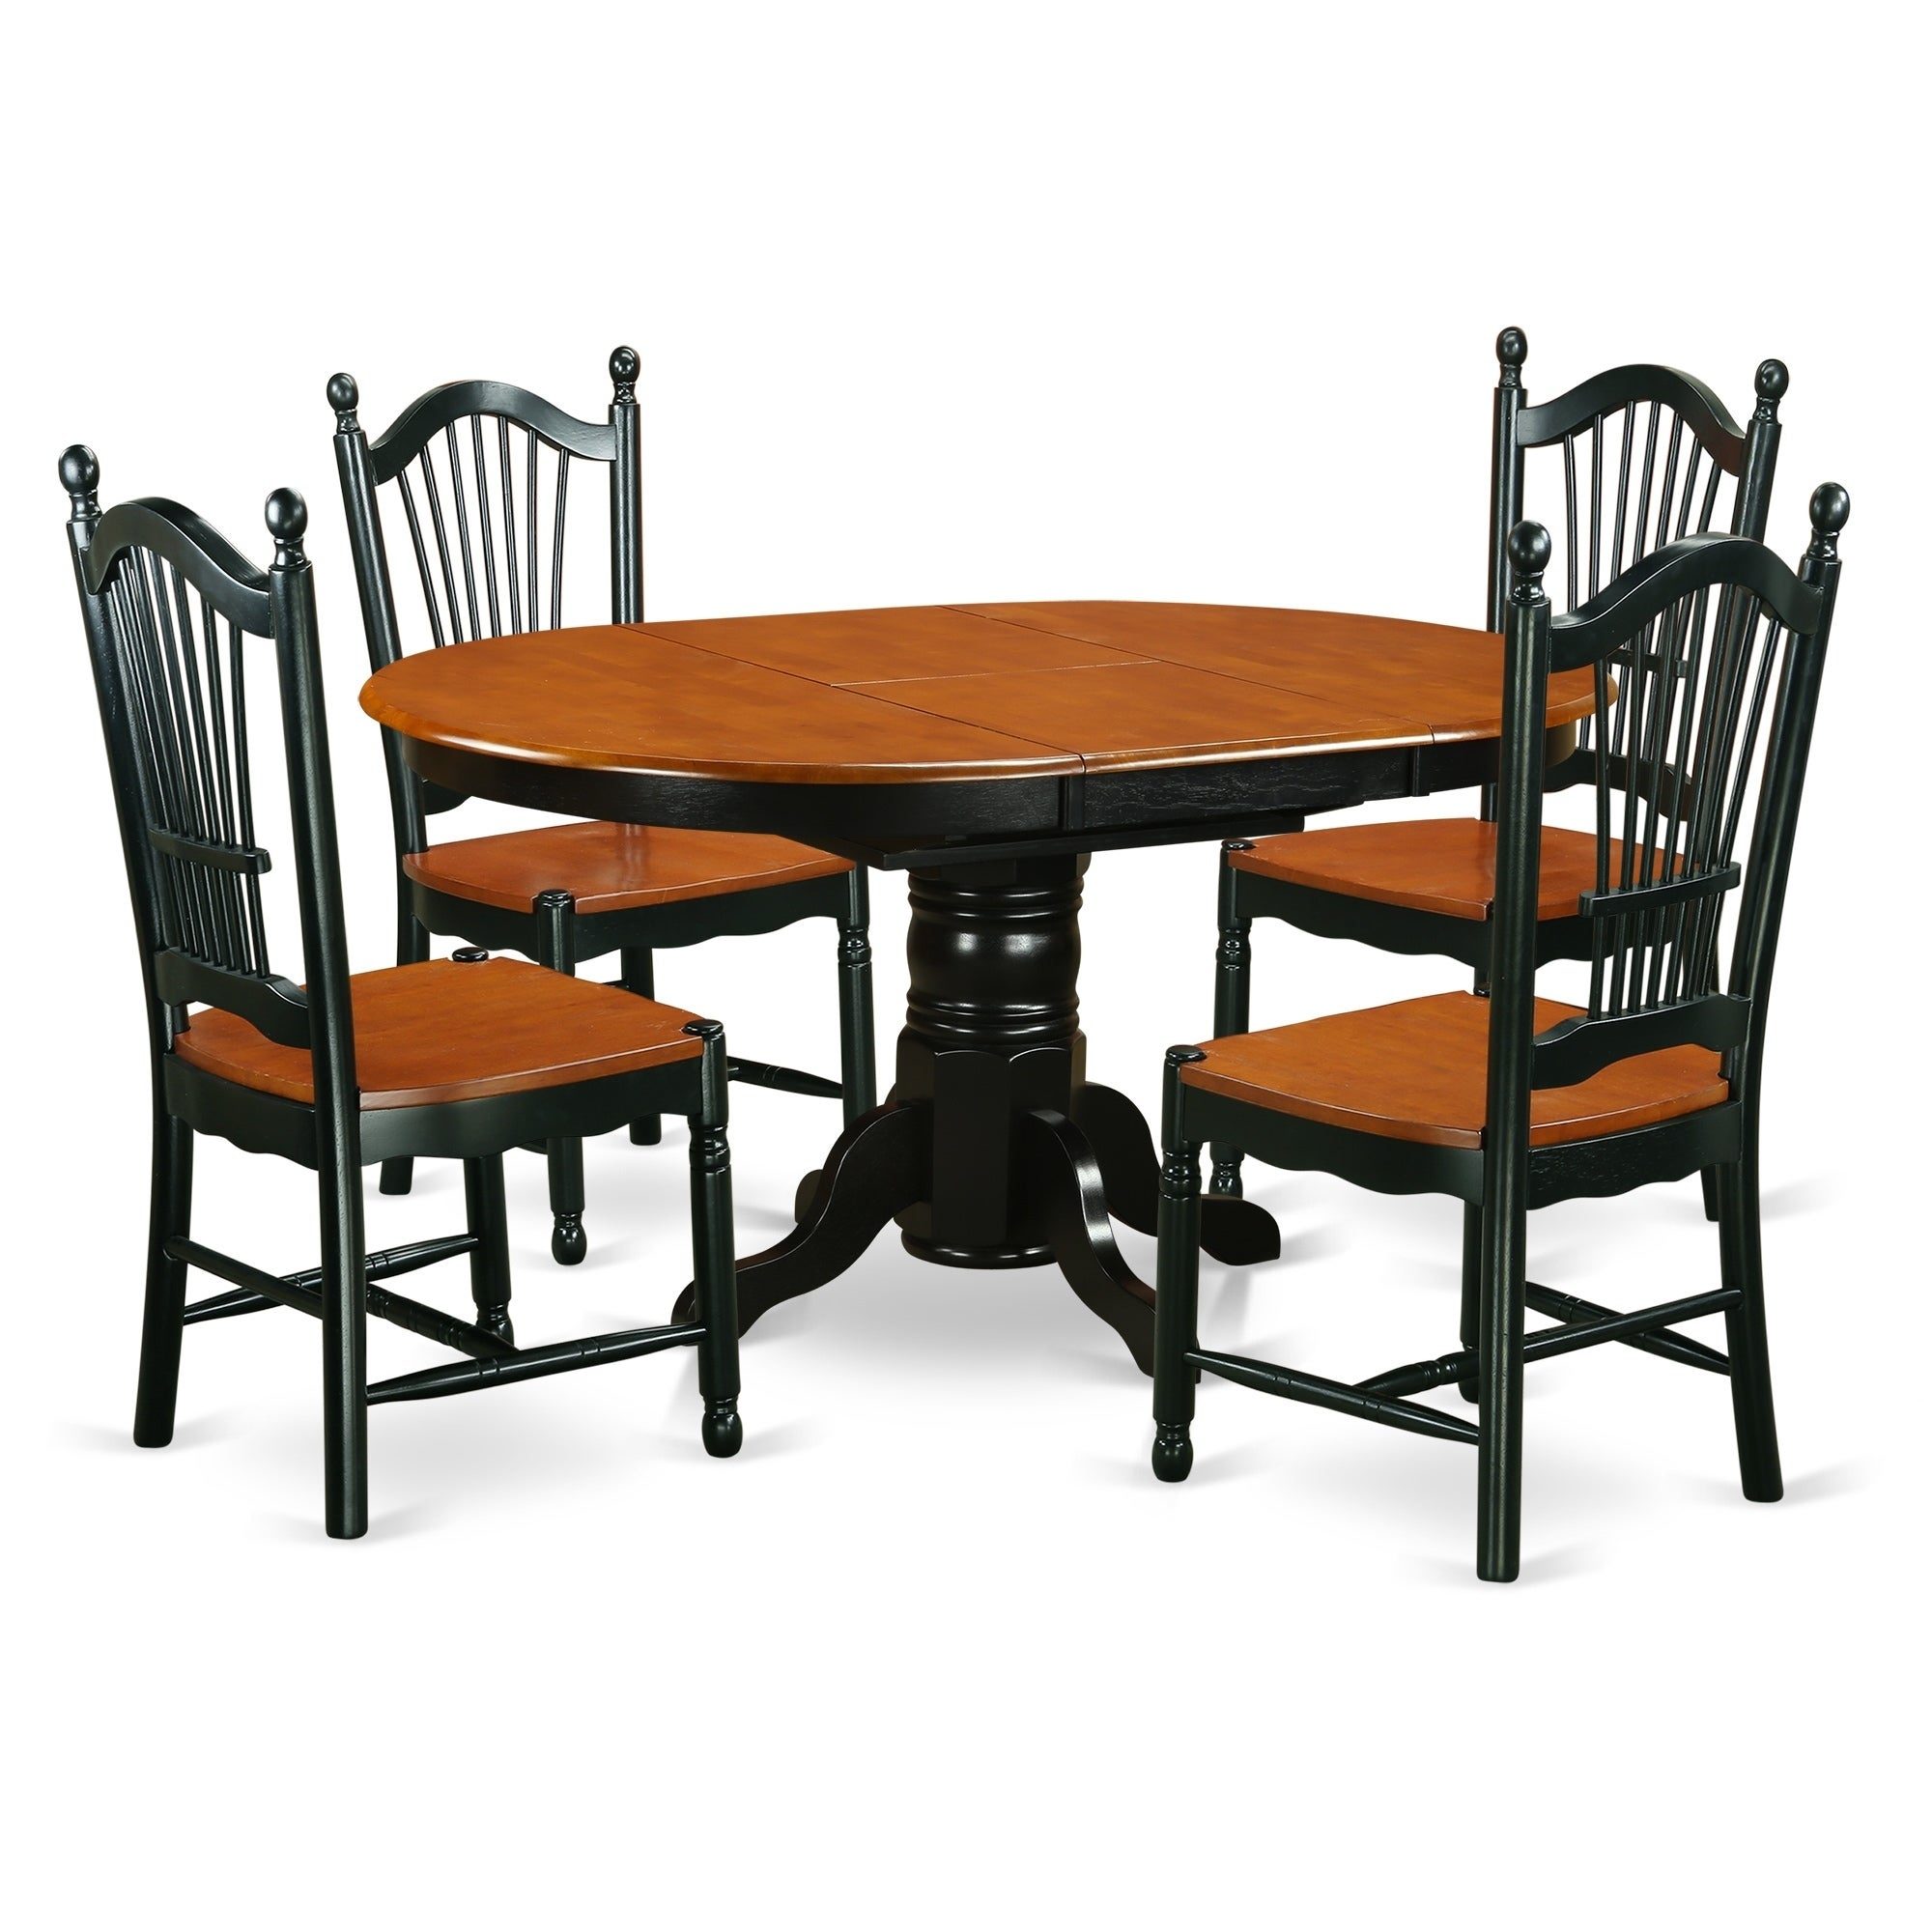 Well Liked Goodman 5 Piece Solid Wood Dining Sets (Set Of 5) Pertaining To Buy 5 Piece Sets, Wood Kitchen & Dining Room Sets Online At (View 20 of 20)